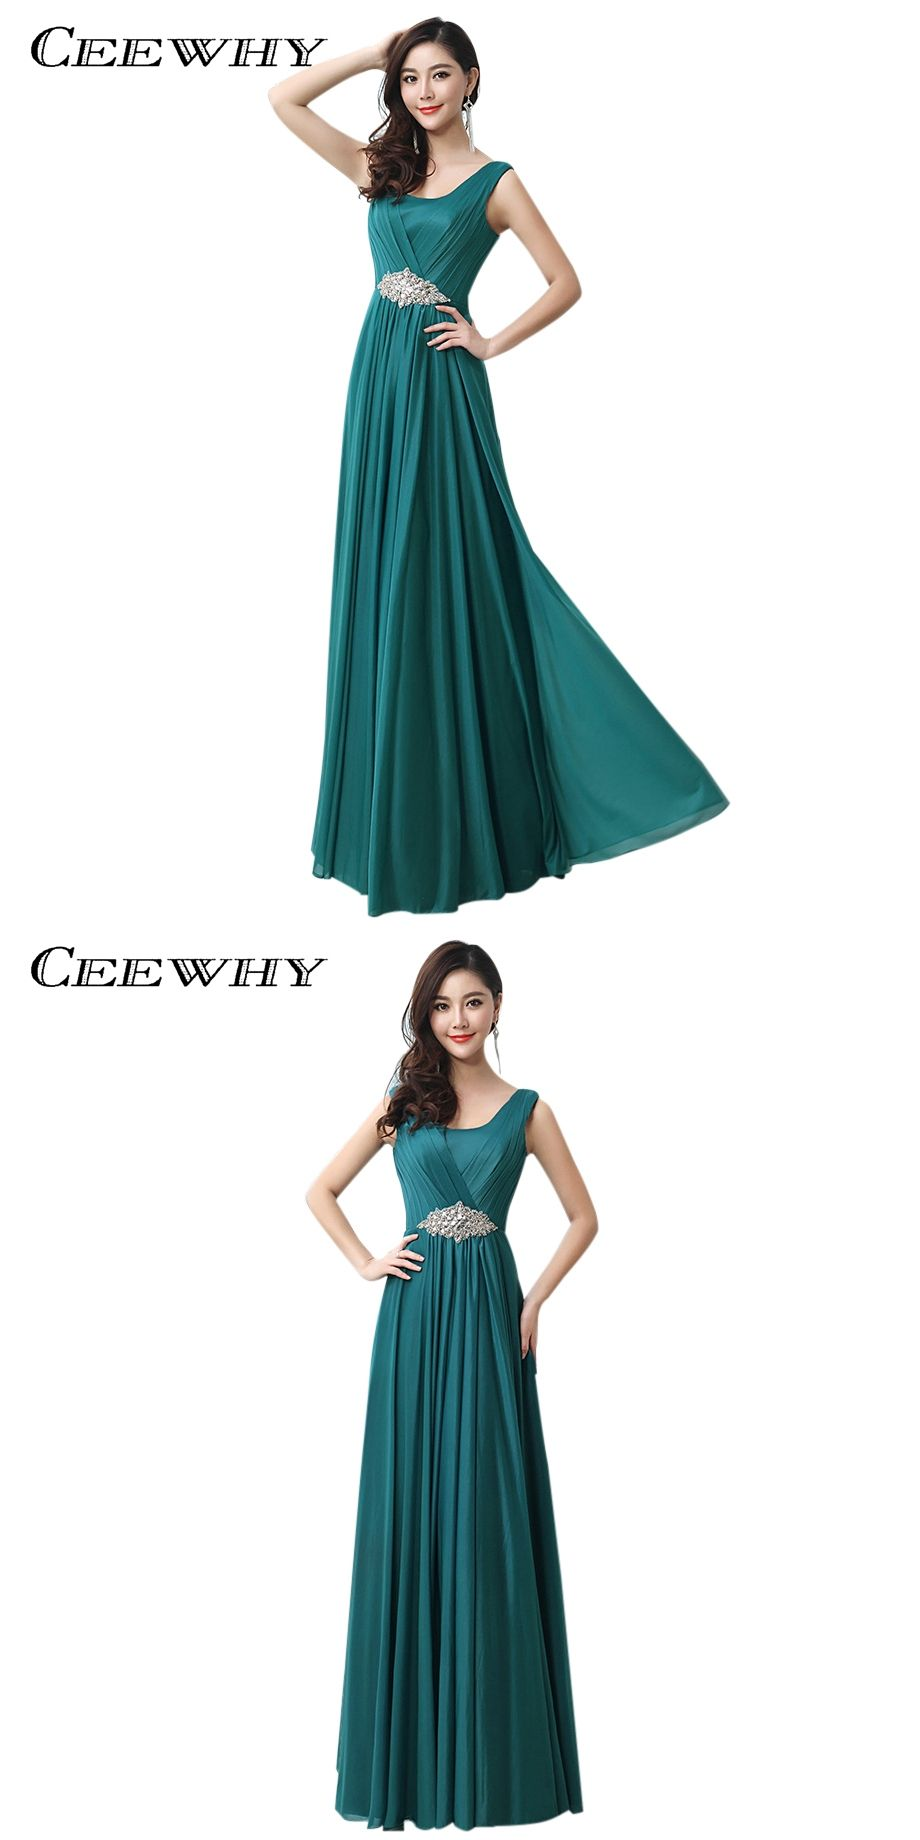 Ceewhy floorlength crystal evening dress formal gowns peacock